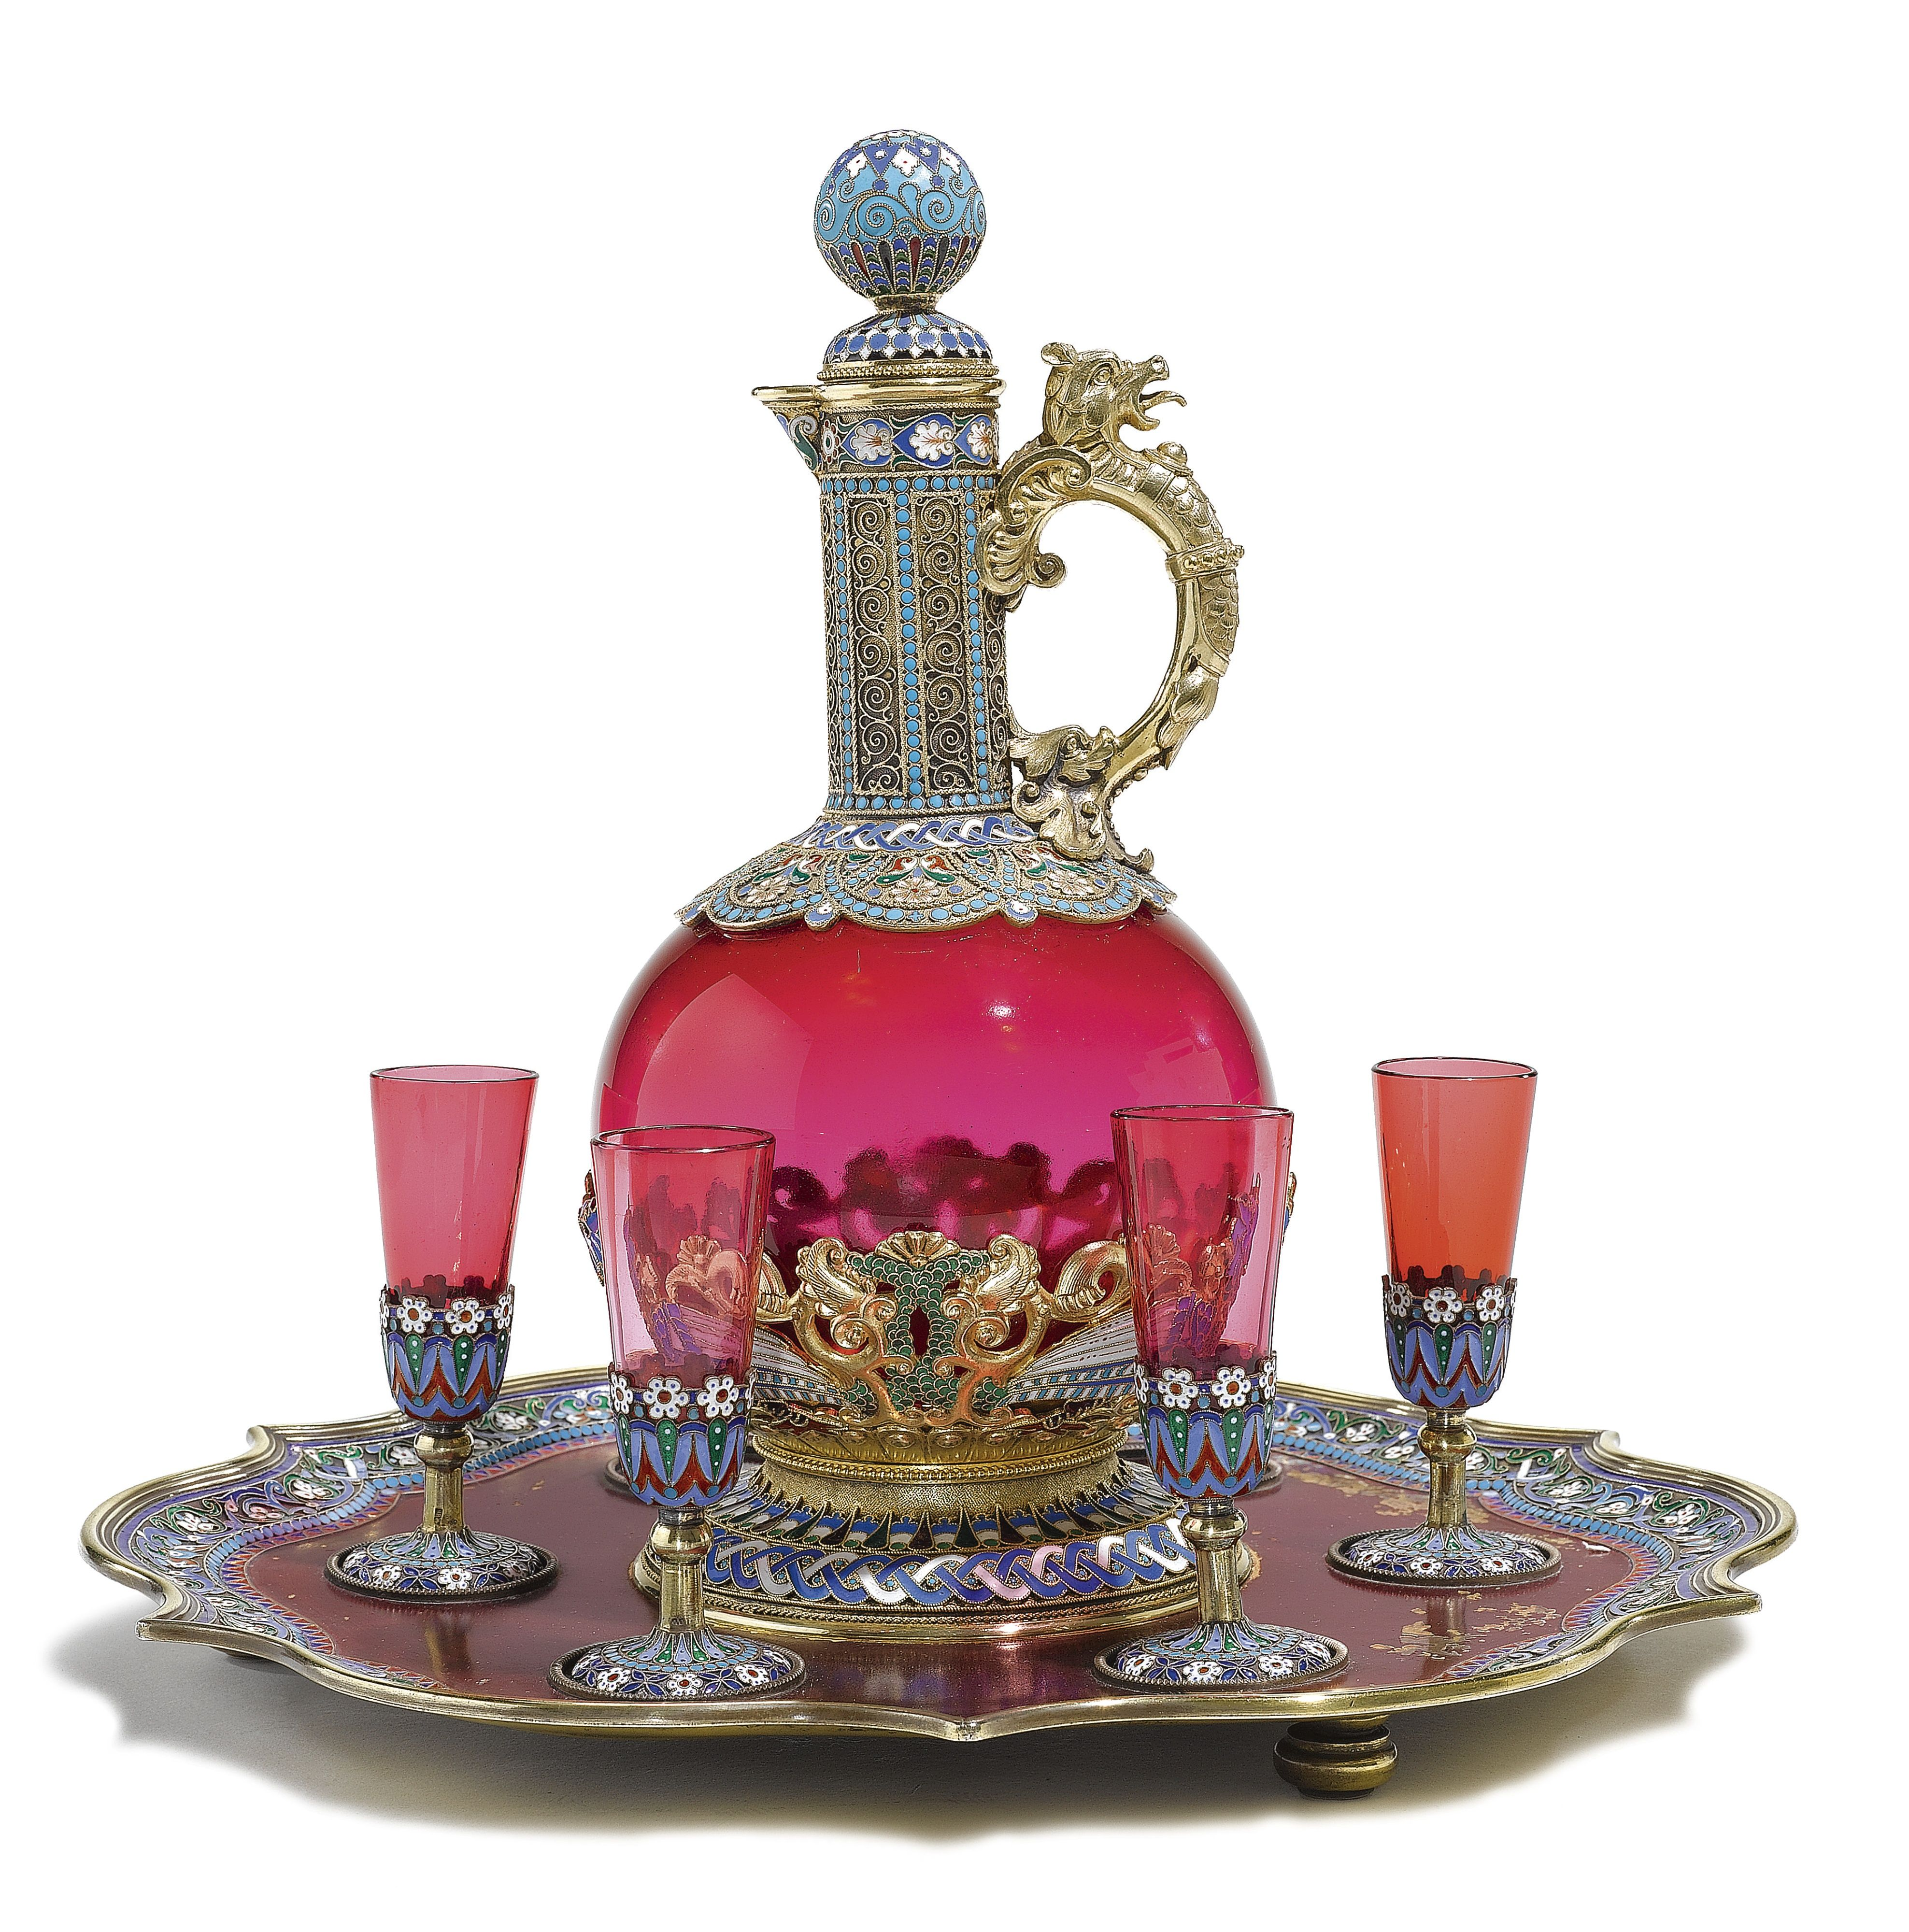 A Rare And Unusual Silver Gilt Cloisonne Enamel Glass And Lacquer Liqueur Set Ovchinnikov Moscow 1899 Vintage Decanter Set Antique Glass Vintage Objects